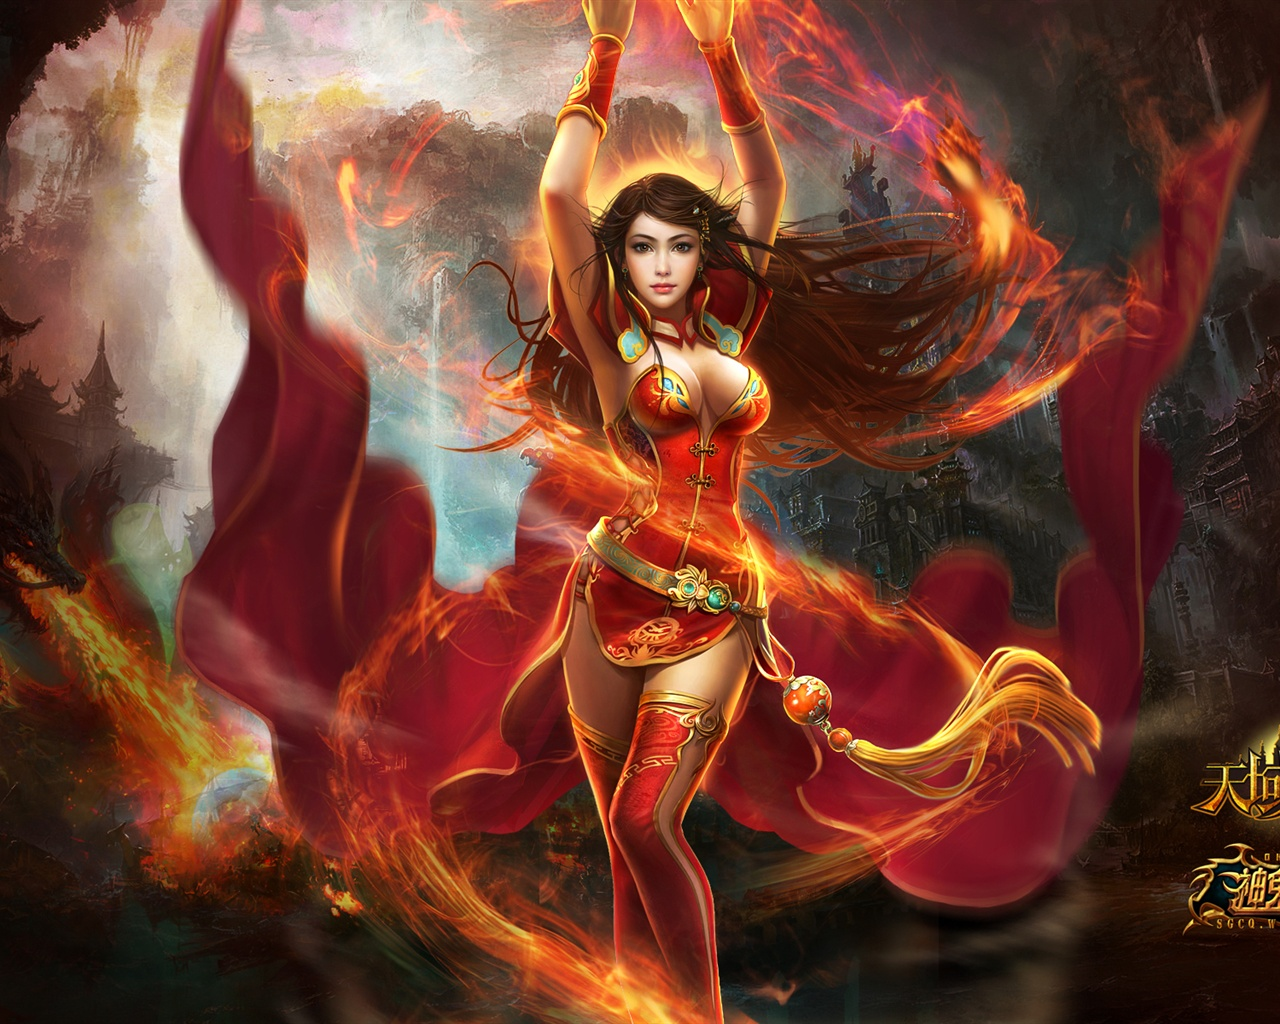 Red dress beautiful girl in game wallpaper - 1280x1024